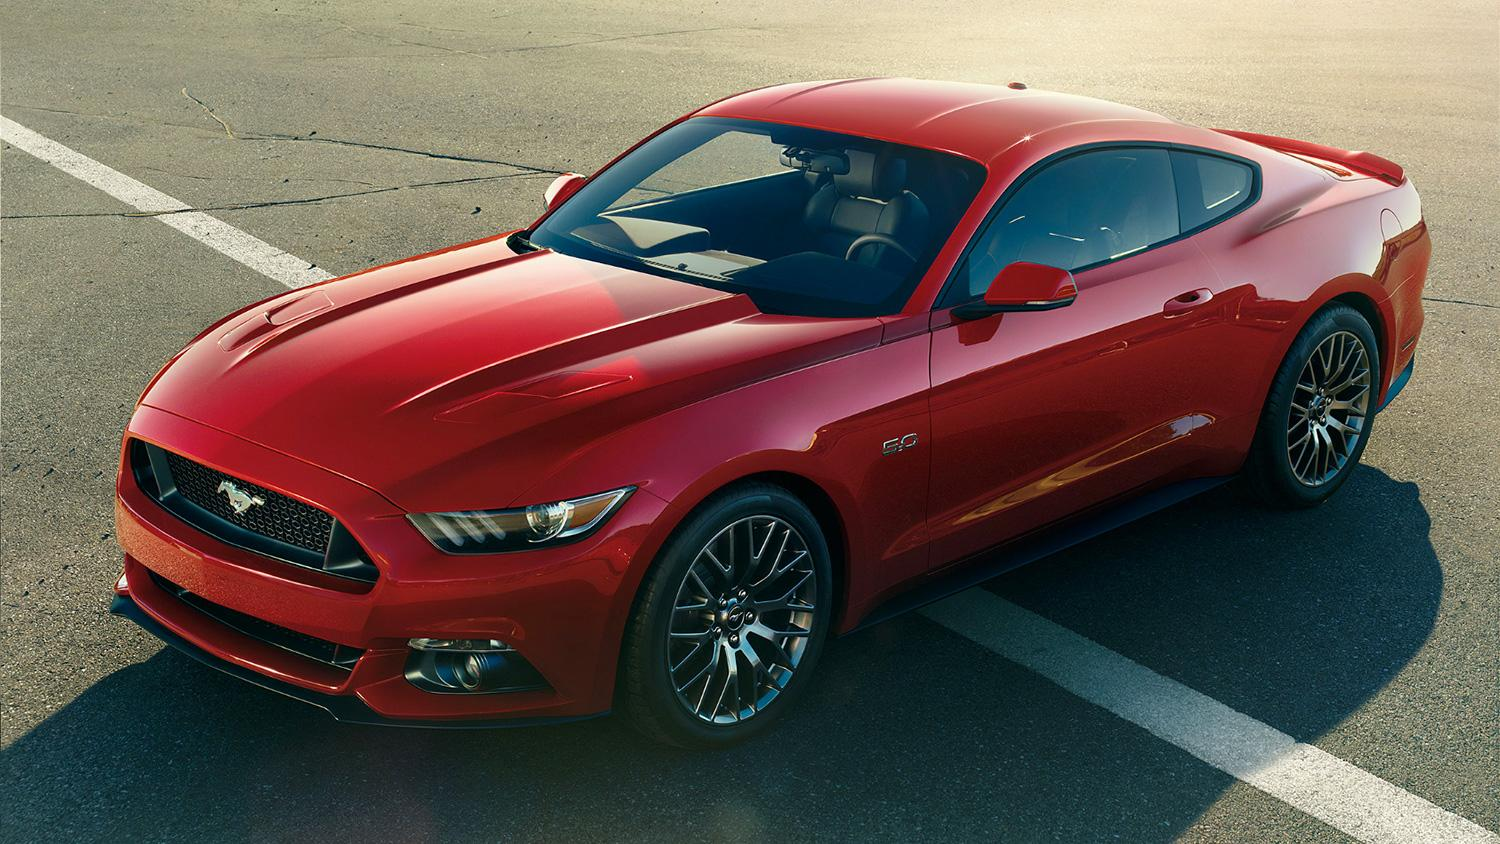 2015 Ford Mustang GT wallpaper HD 1500x844